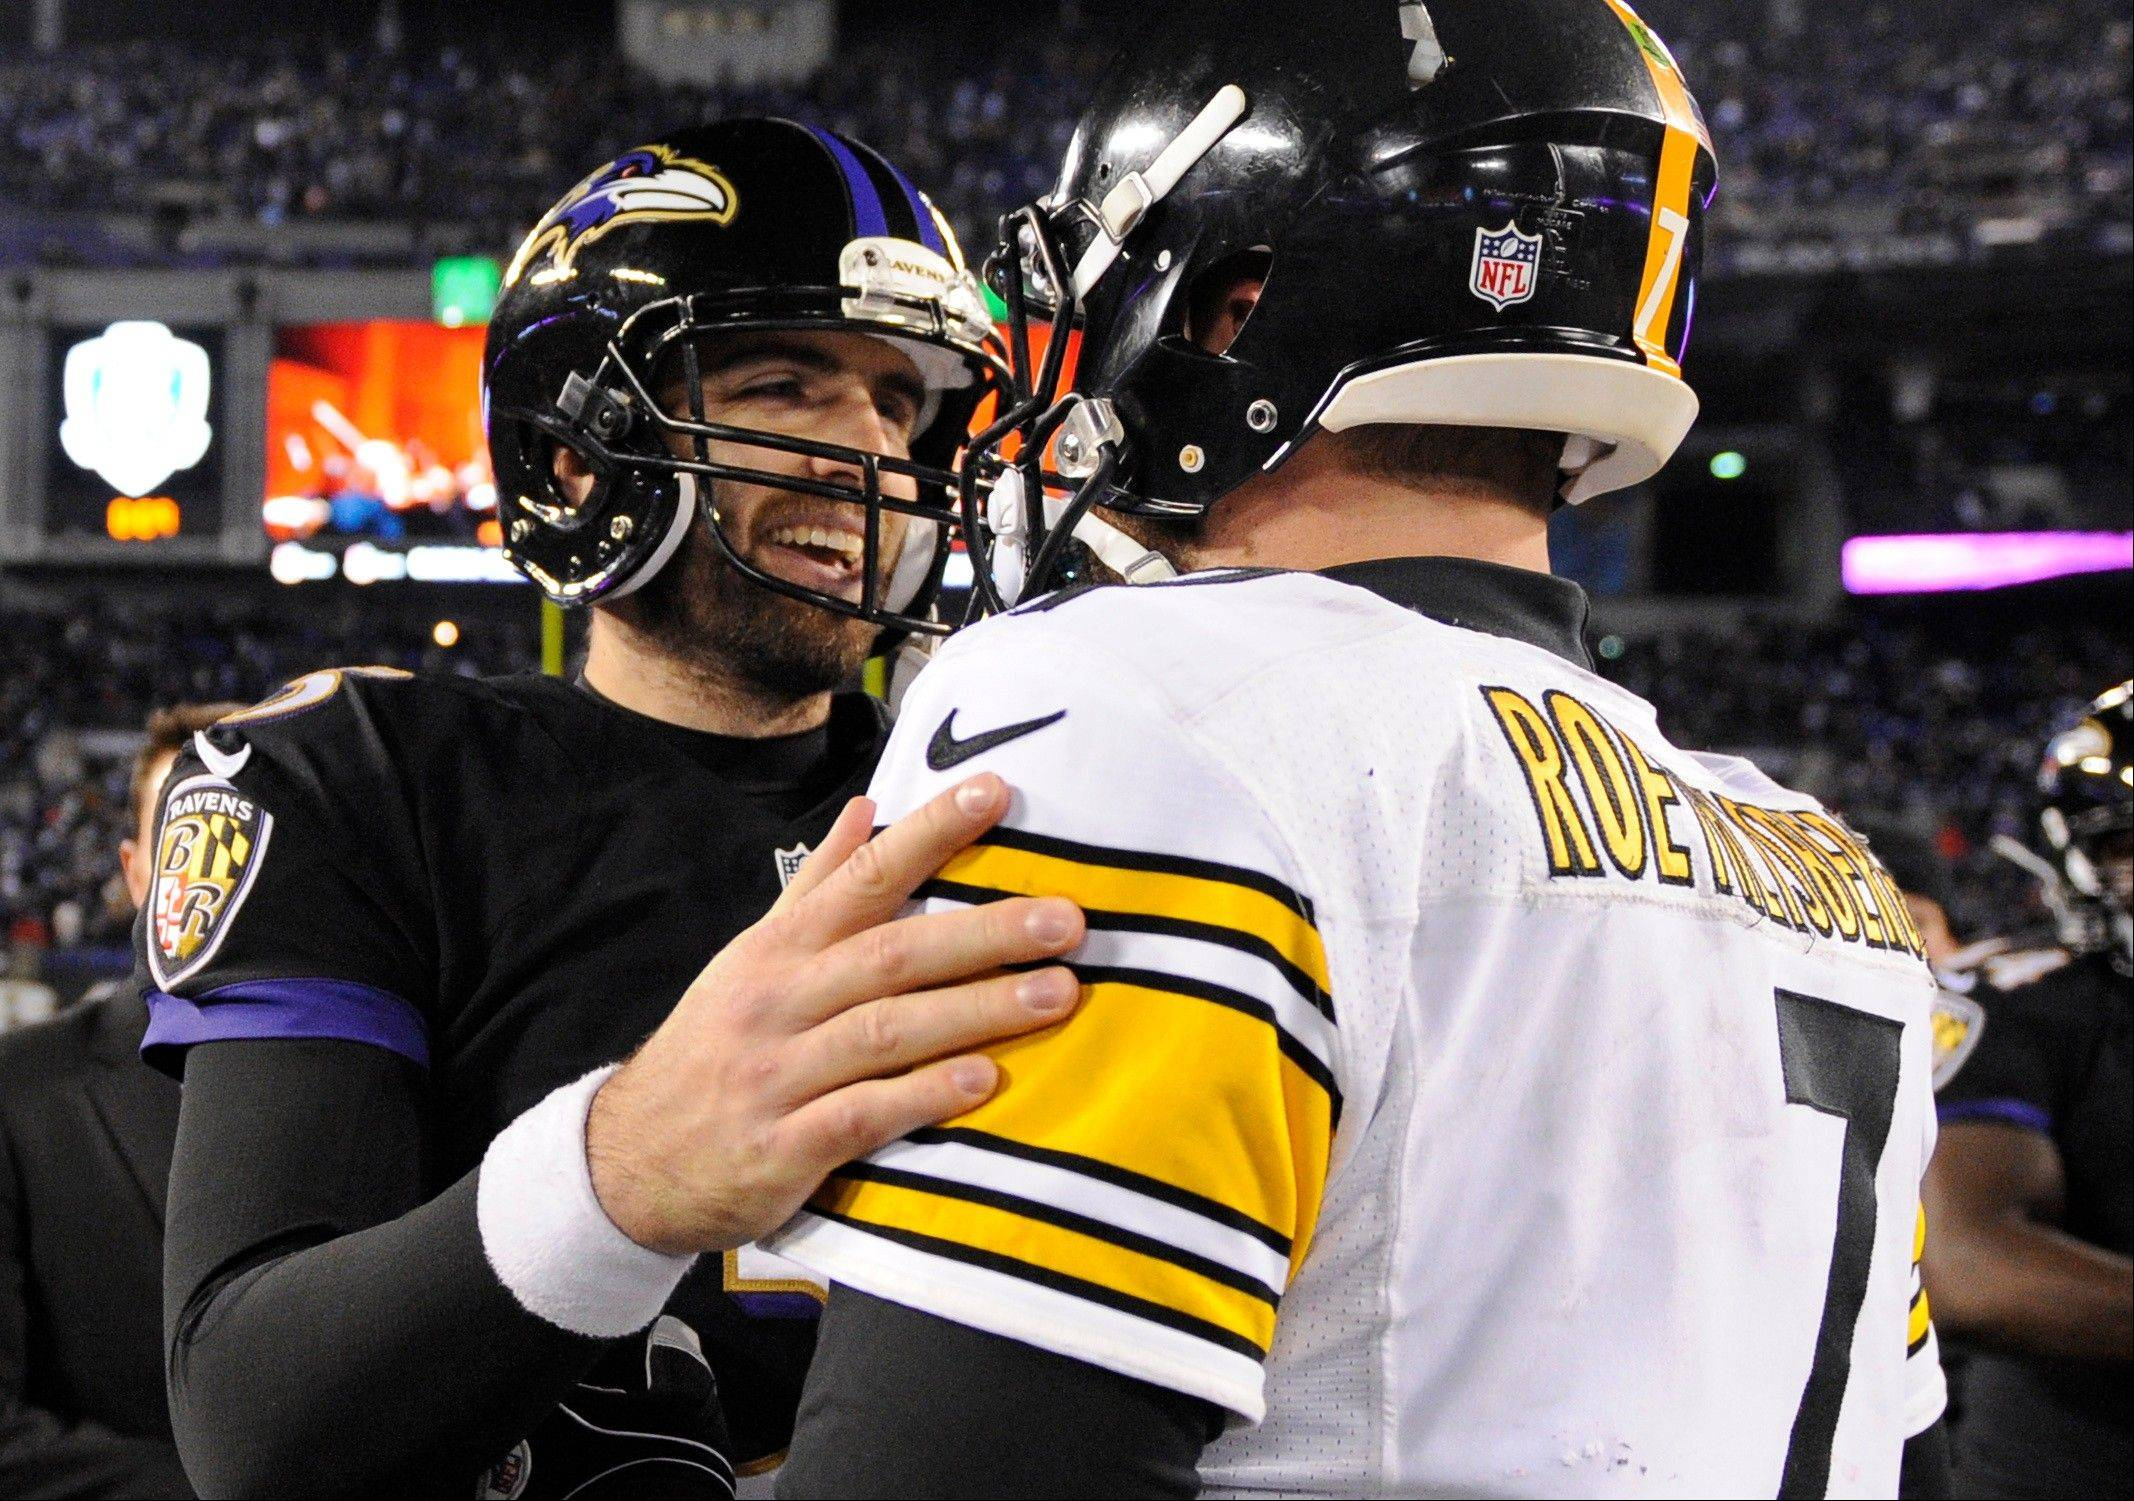 Baltimore Ravens quarterback Joe Flacco, left, chats with Pittsburgh Steelers quarterback Ben Roethlisberger after an NFL football game, Thursday, Nov. 28, 2013, in Baltimore. Baltimore won 22-20.